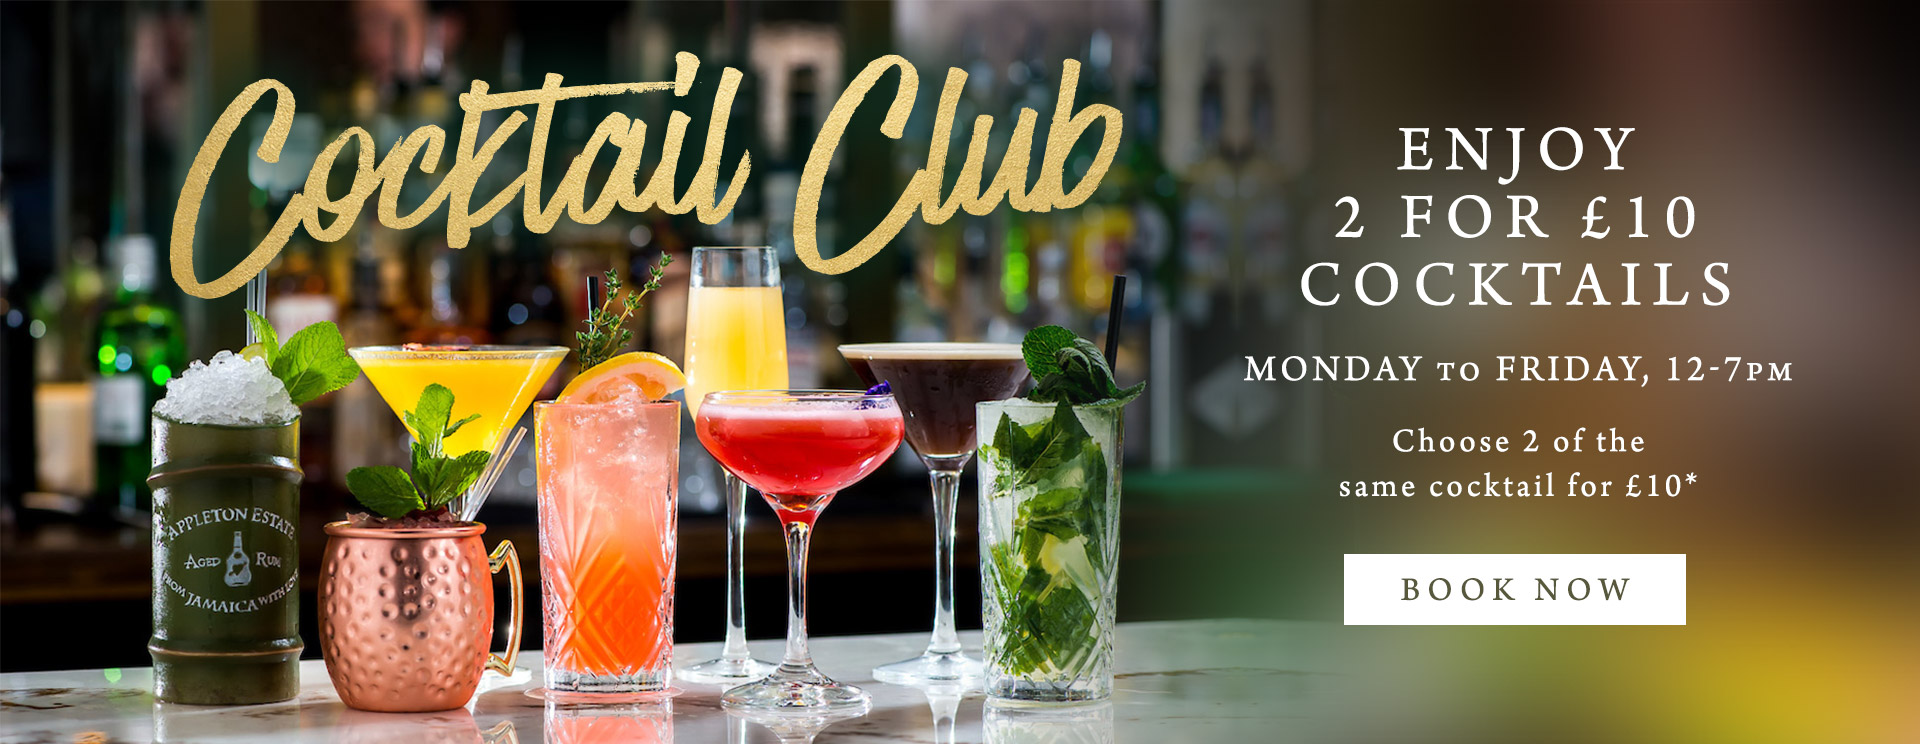 2 for £10 cocktails at The Mossbrook Inn